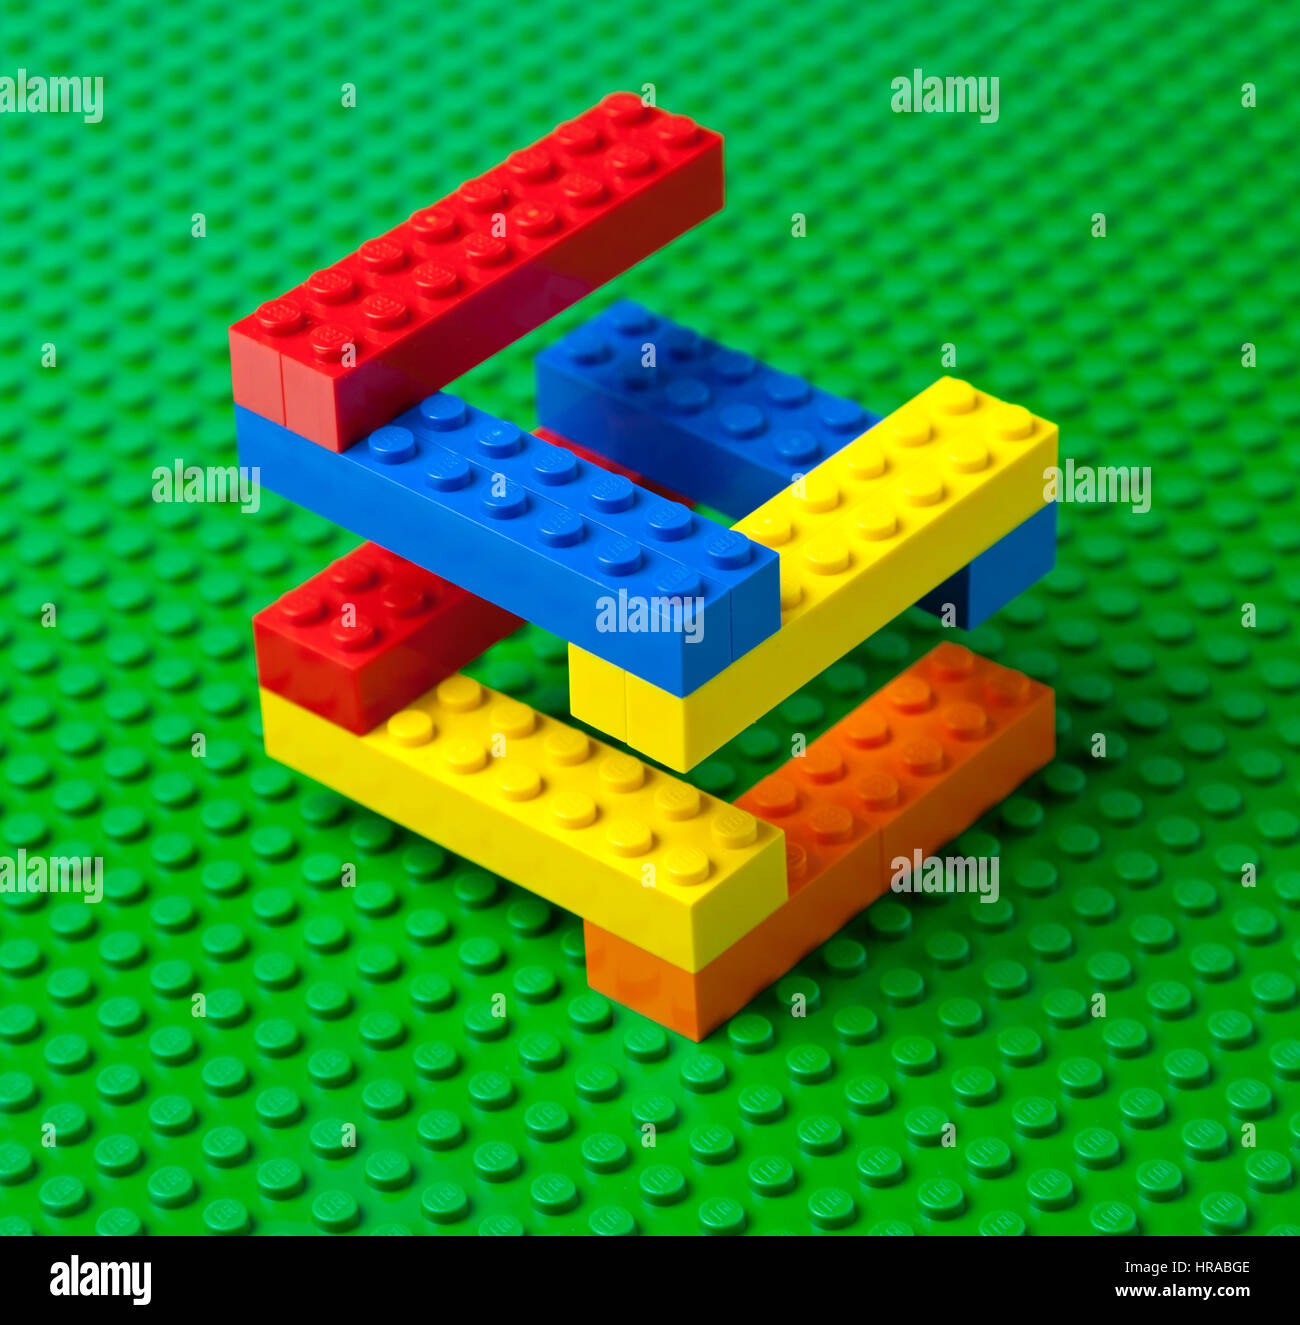 Colourful Lego brick construction or staircase on a green Lego base plate. - Stock Image